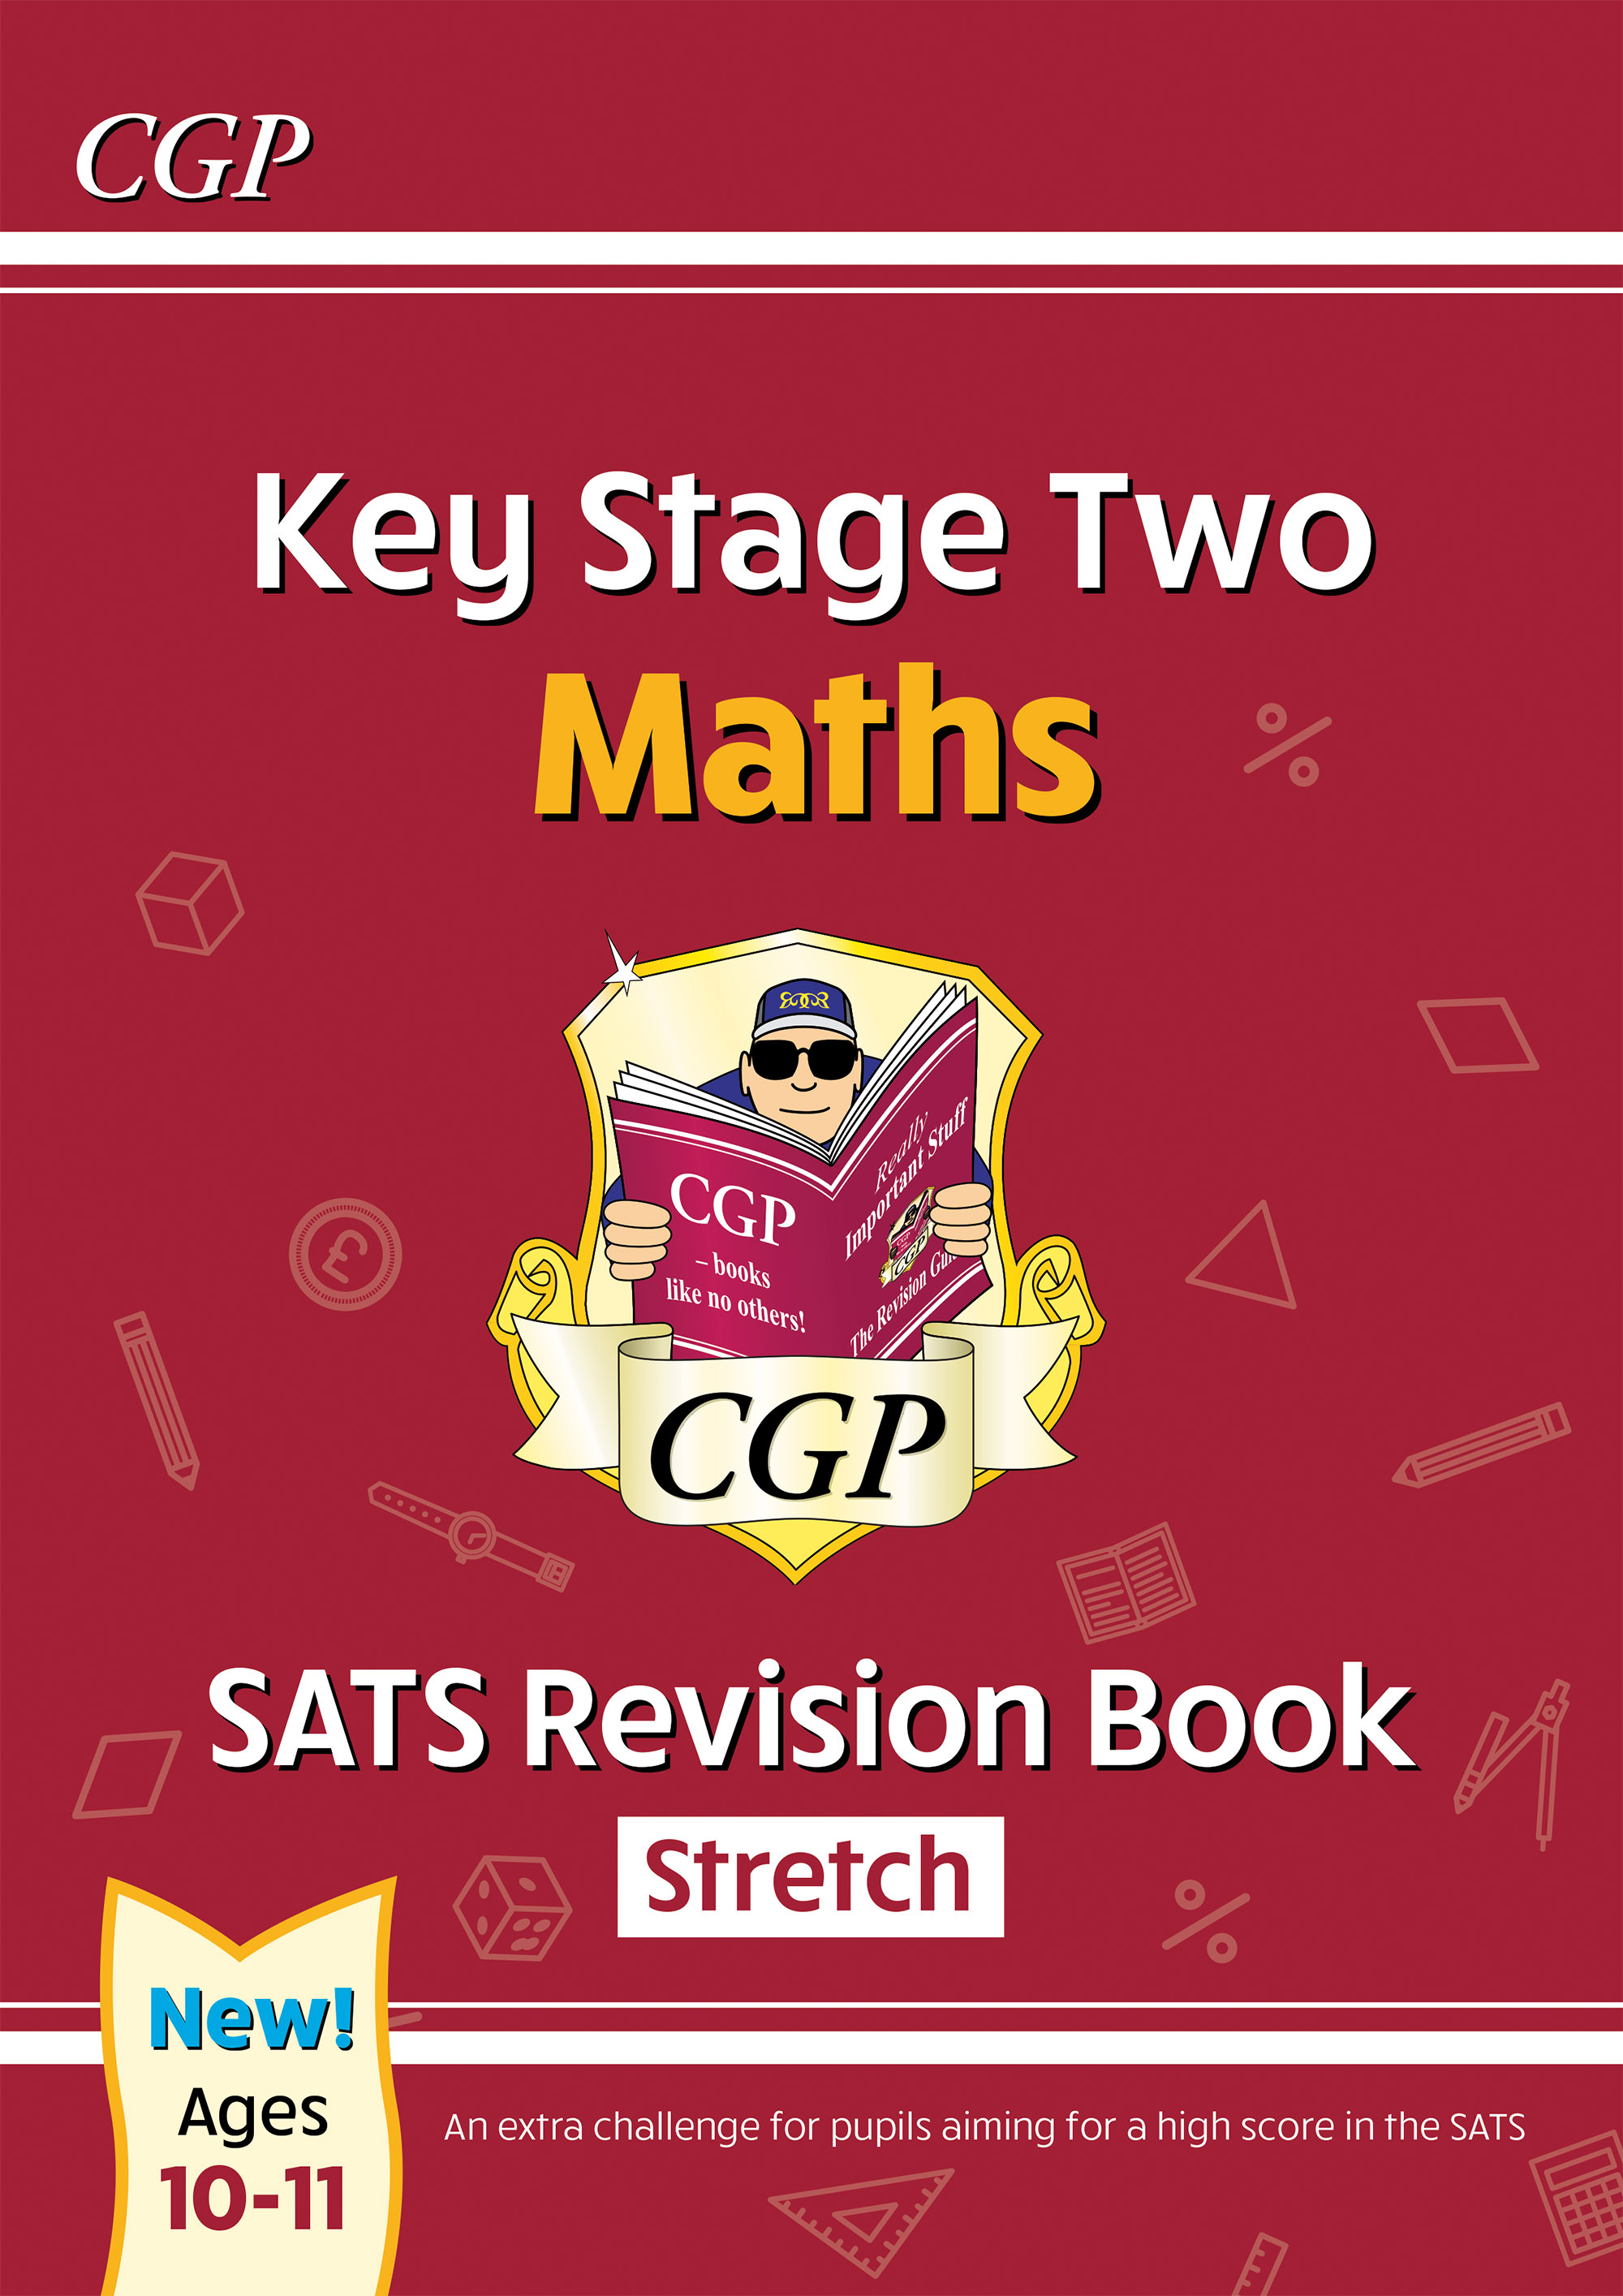 New Ks2 Maths Sats Revision Book Stretch